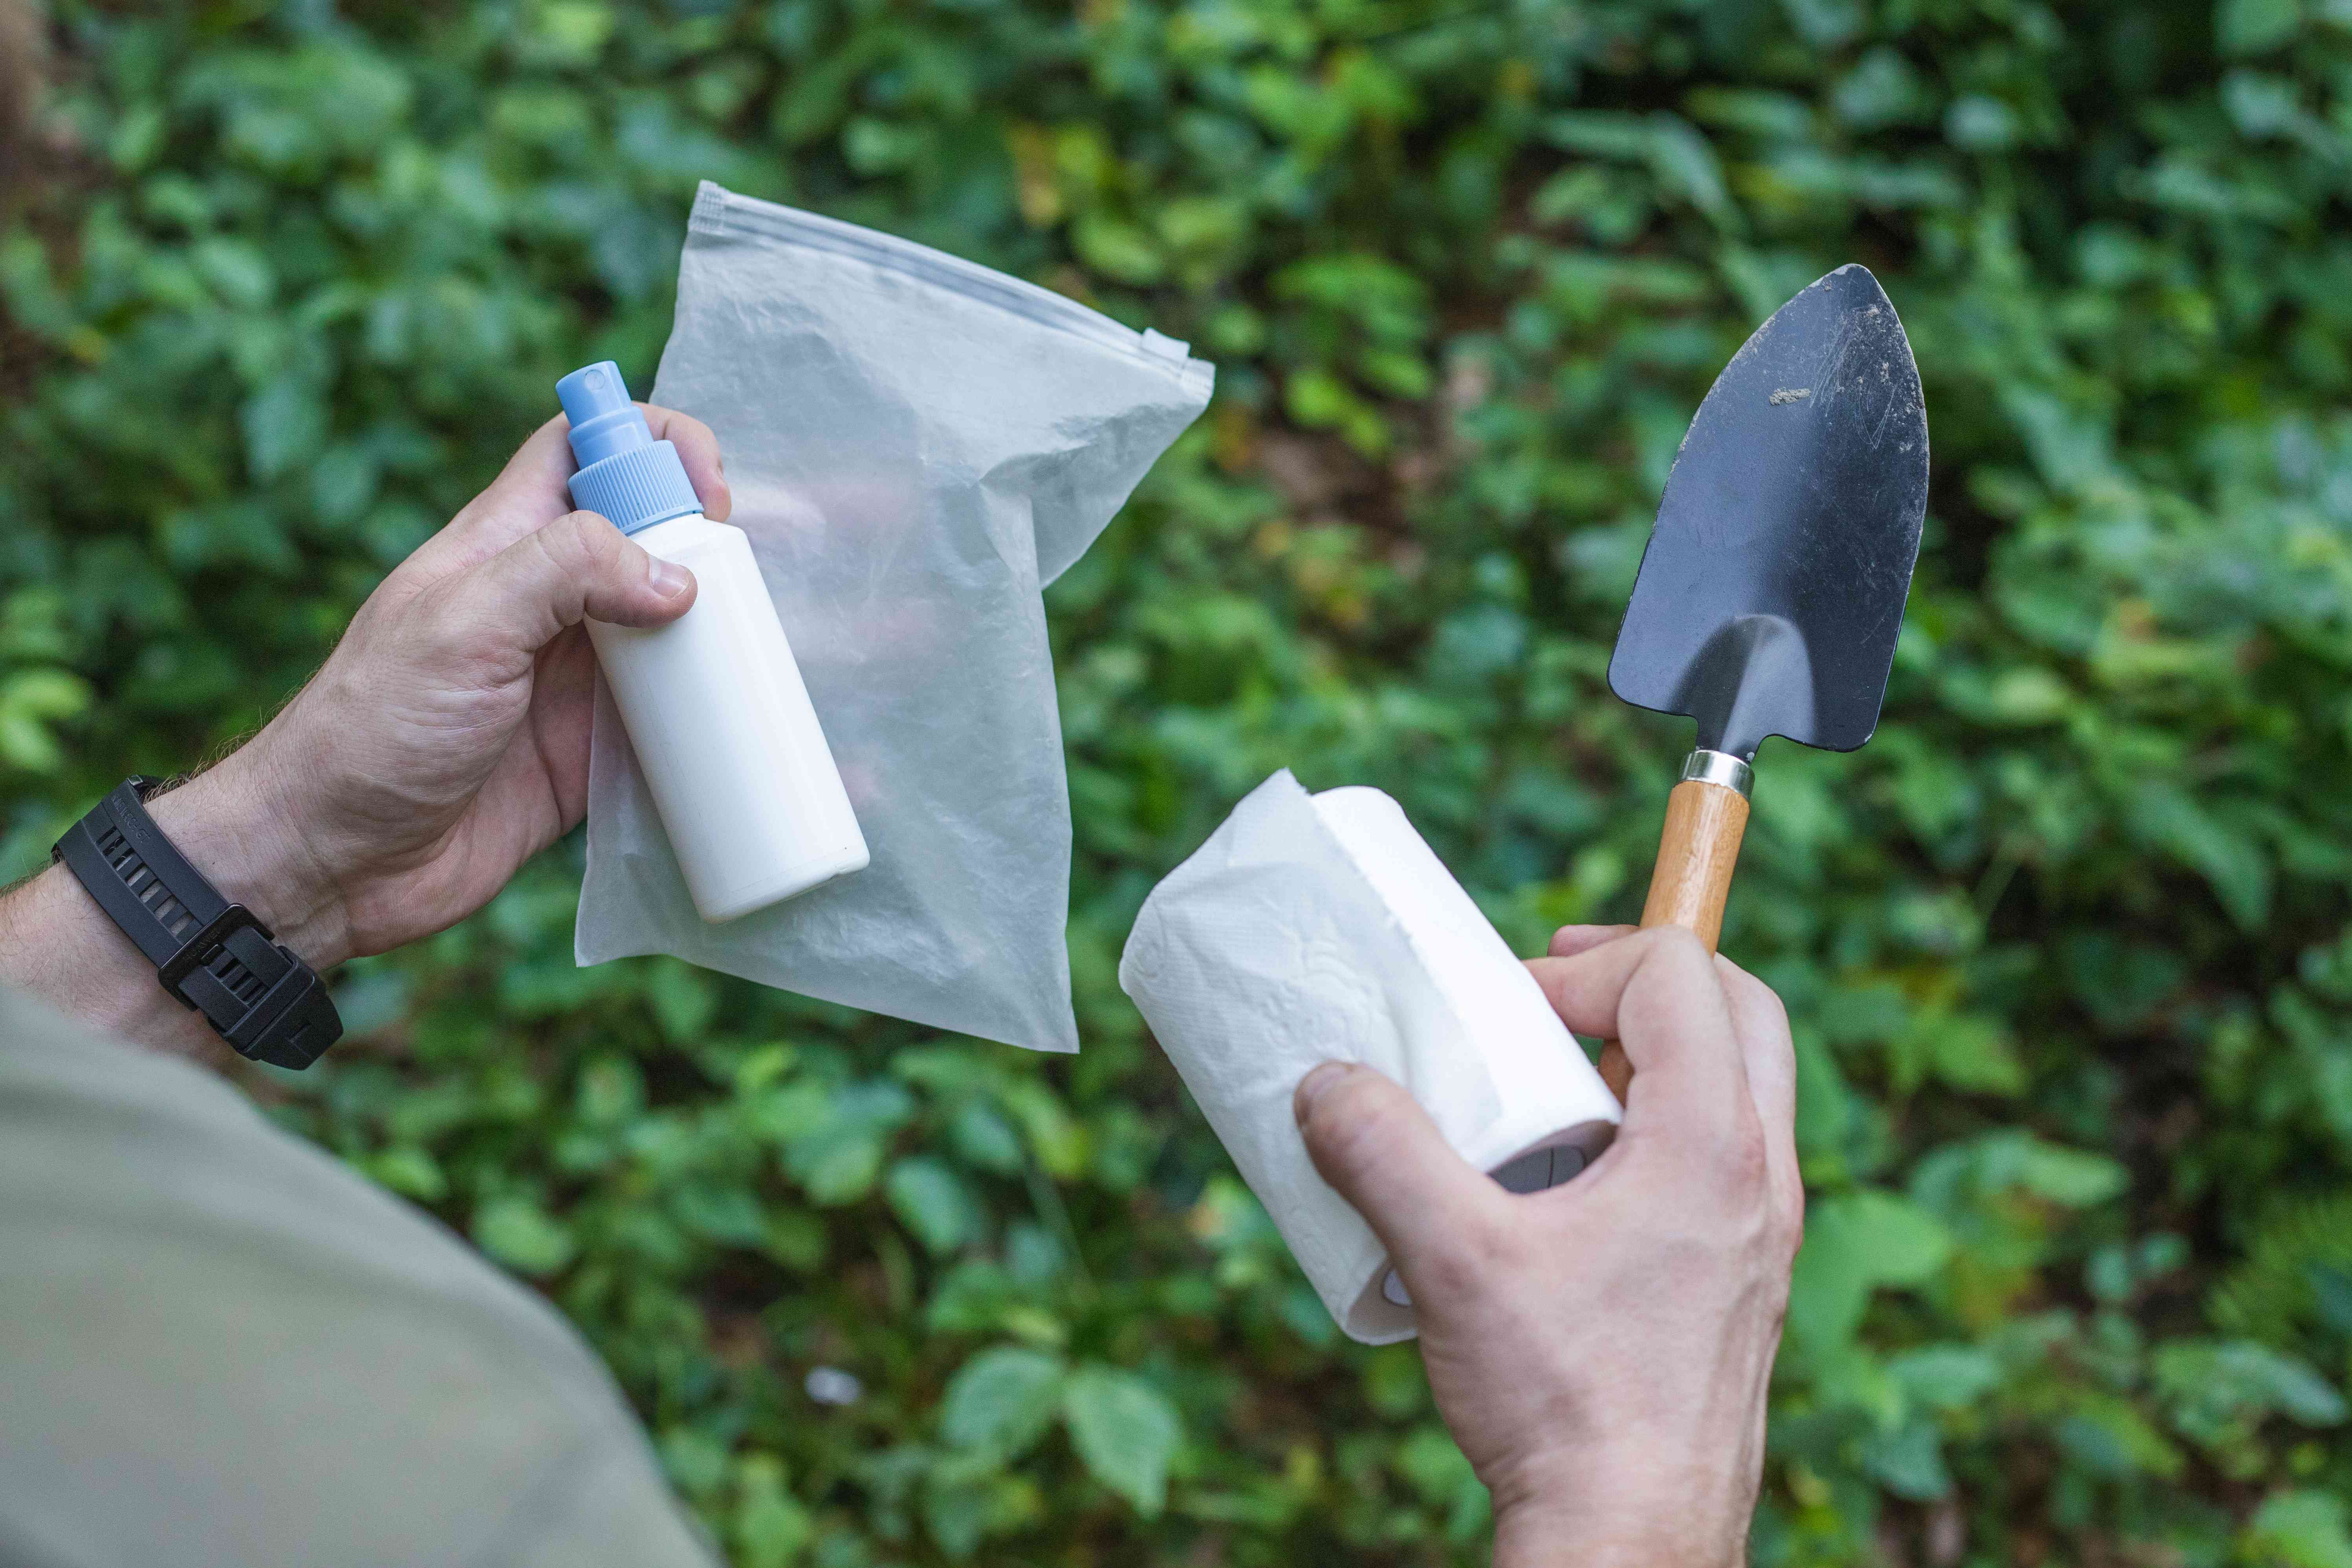 guy holds tools for going to the bathroom outside, including toilet paper and small garden spade